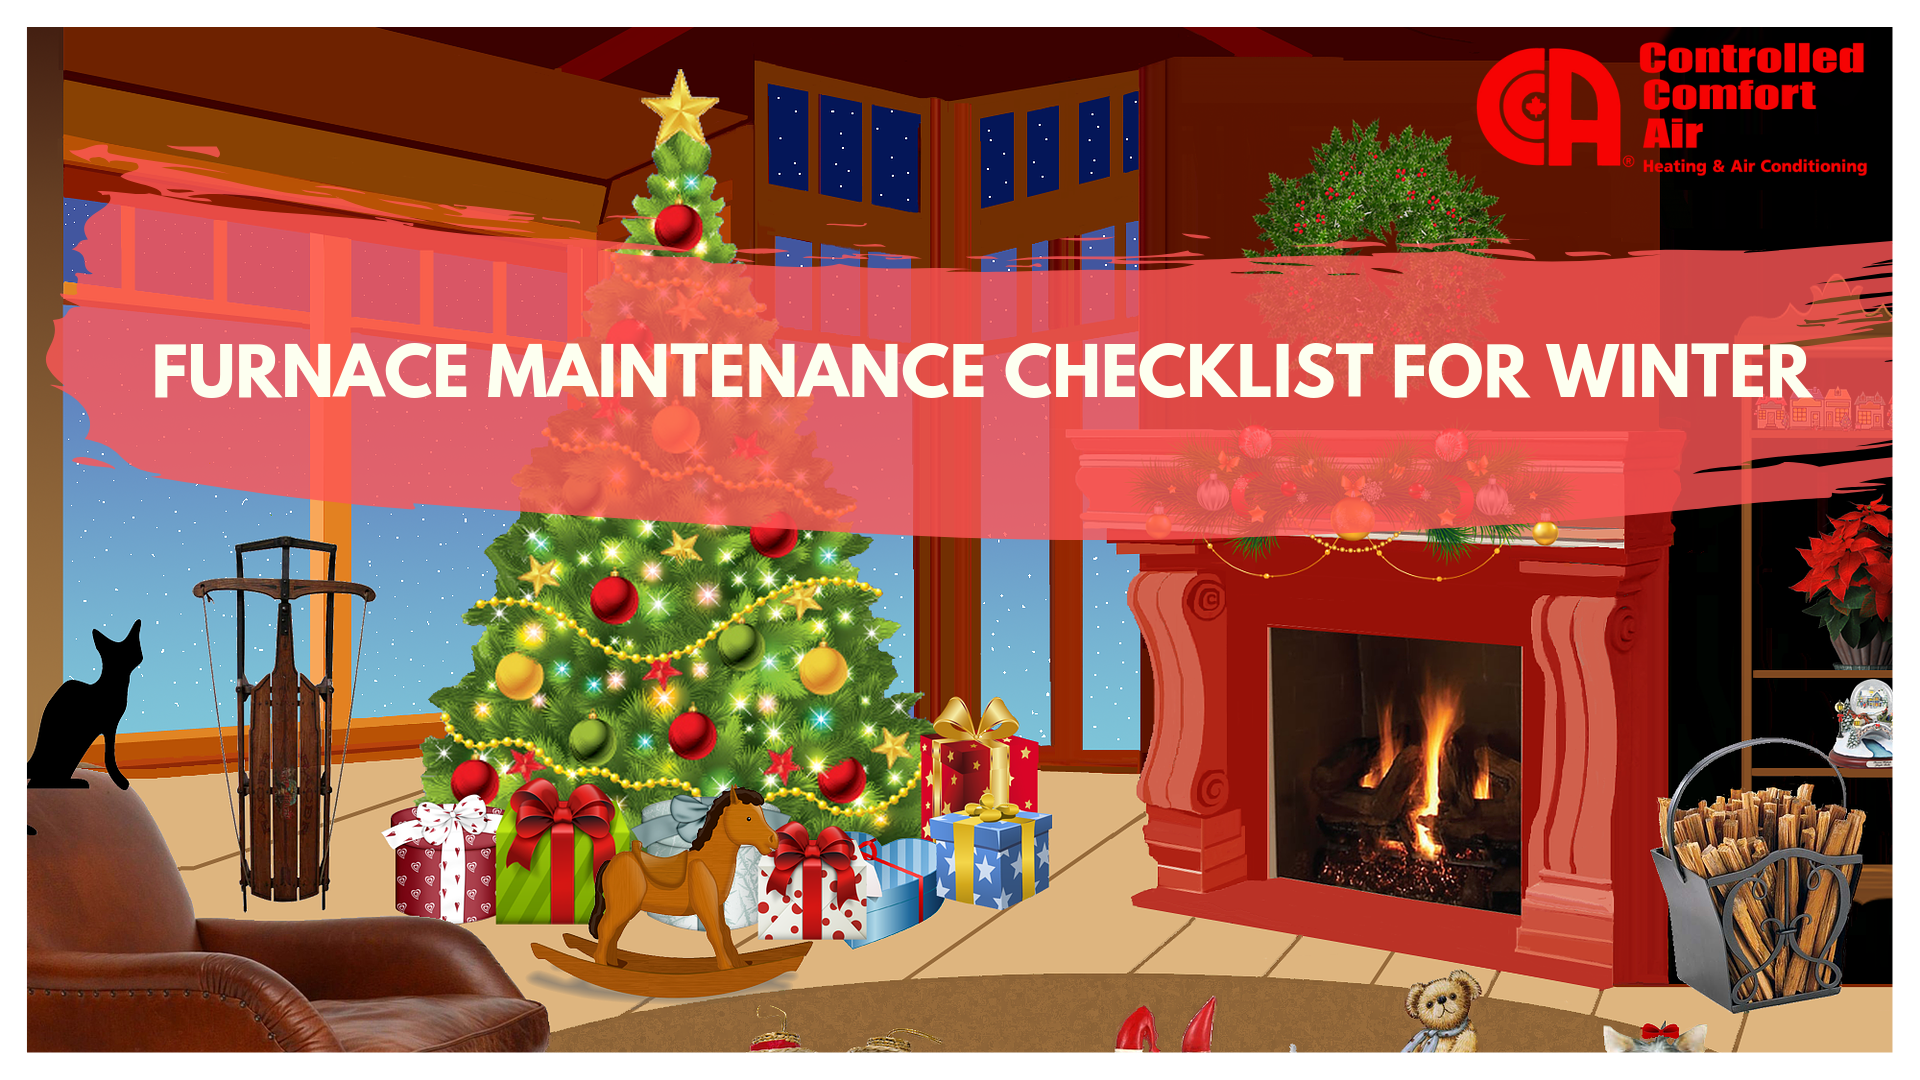 7 Ways to Prepare For Winter Using the Furnace Maintenance Checklist